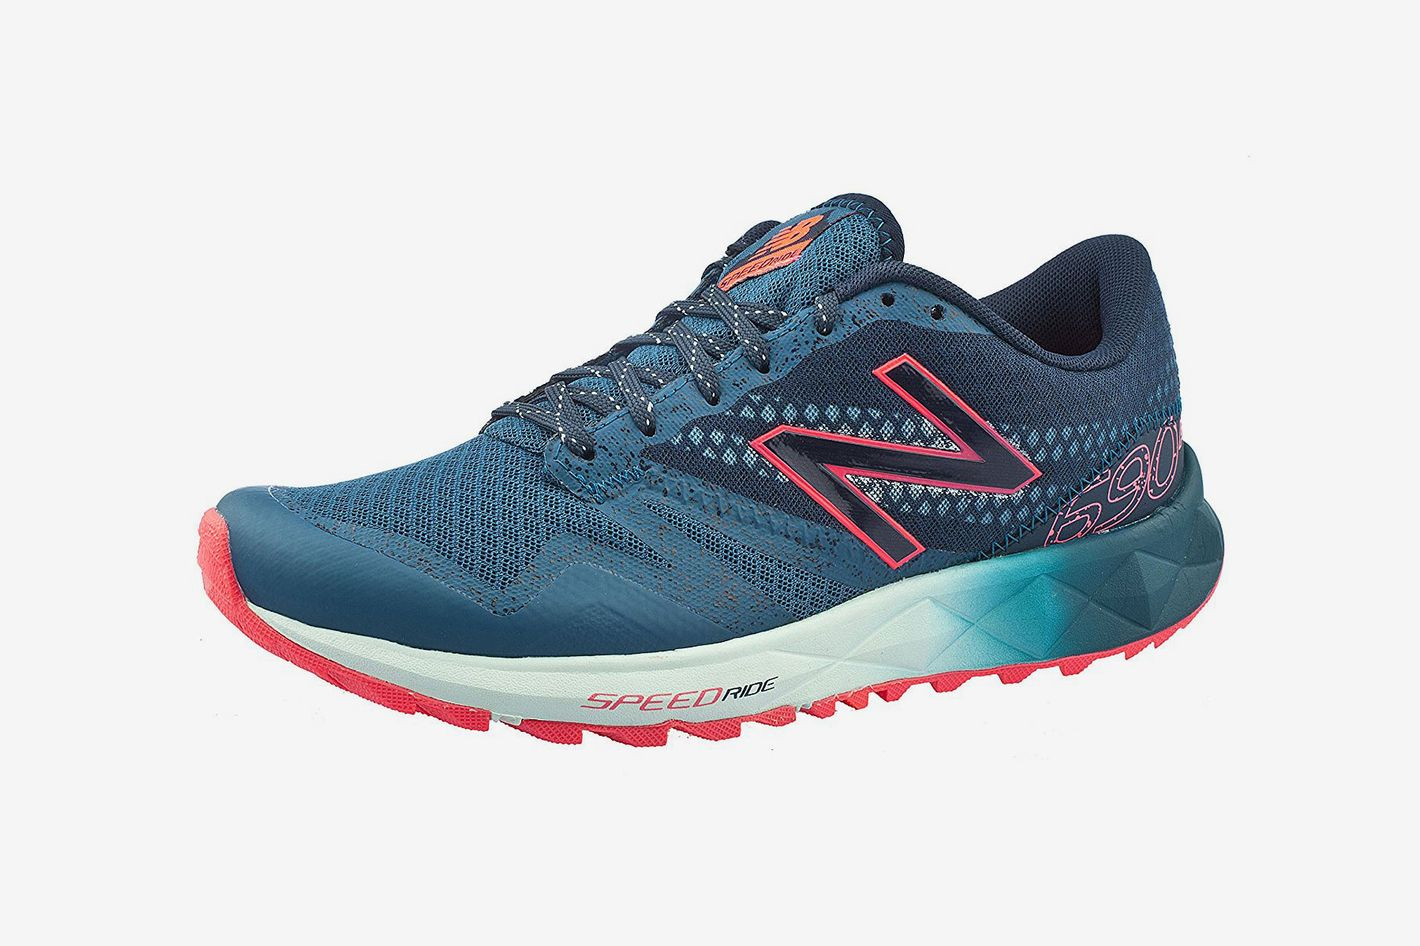 d08c28277f61 New Balance Women s wt690 Trail Running Sneaker